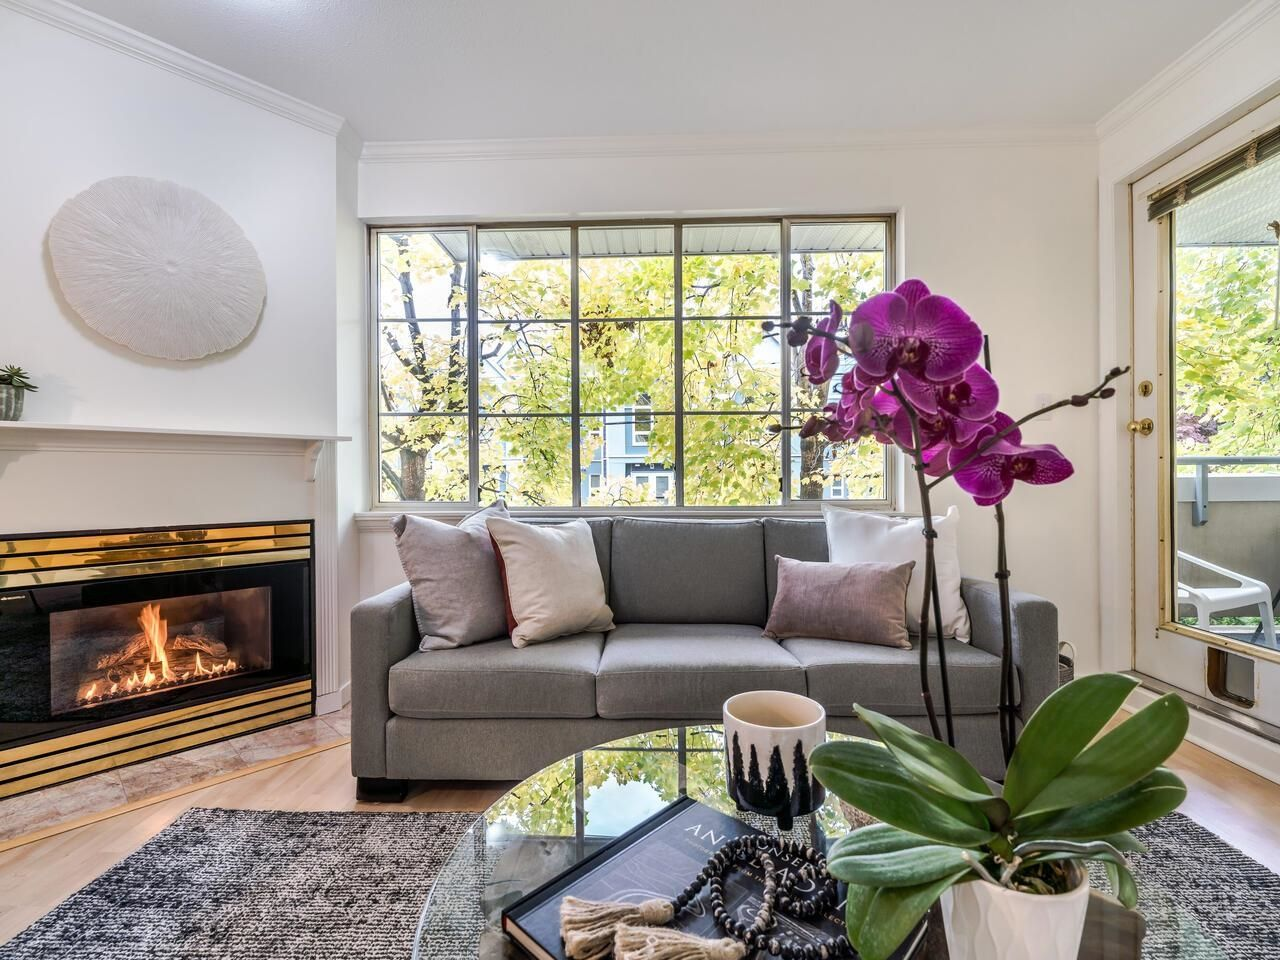 """Main Photo: 203 825 W 15TH Avenue in Vancouver: Fairview VW Condo for sale in """"The Harrod"""" (Vancouver West)  : MLS®# R2625822"""